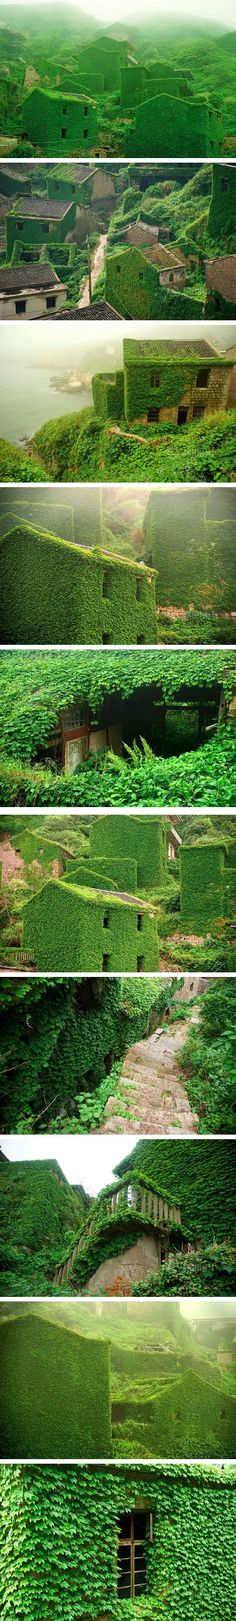 Photographer Captures Amazing Images of an Abandoned Chinese Fishing Village Being Reclaimed by Nature